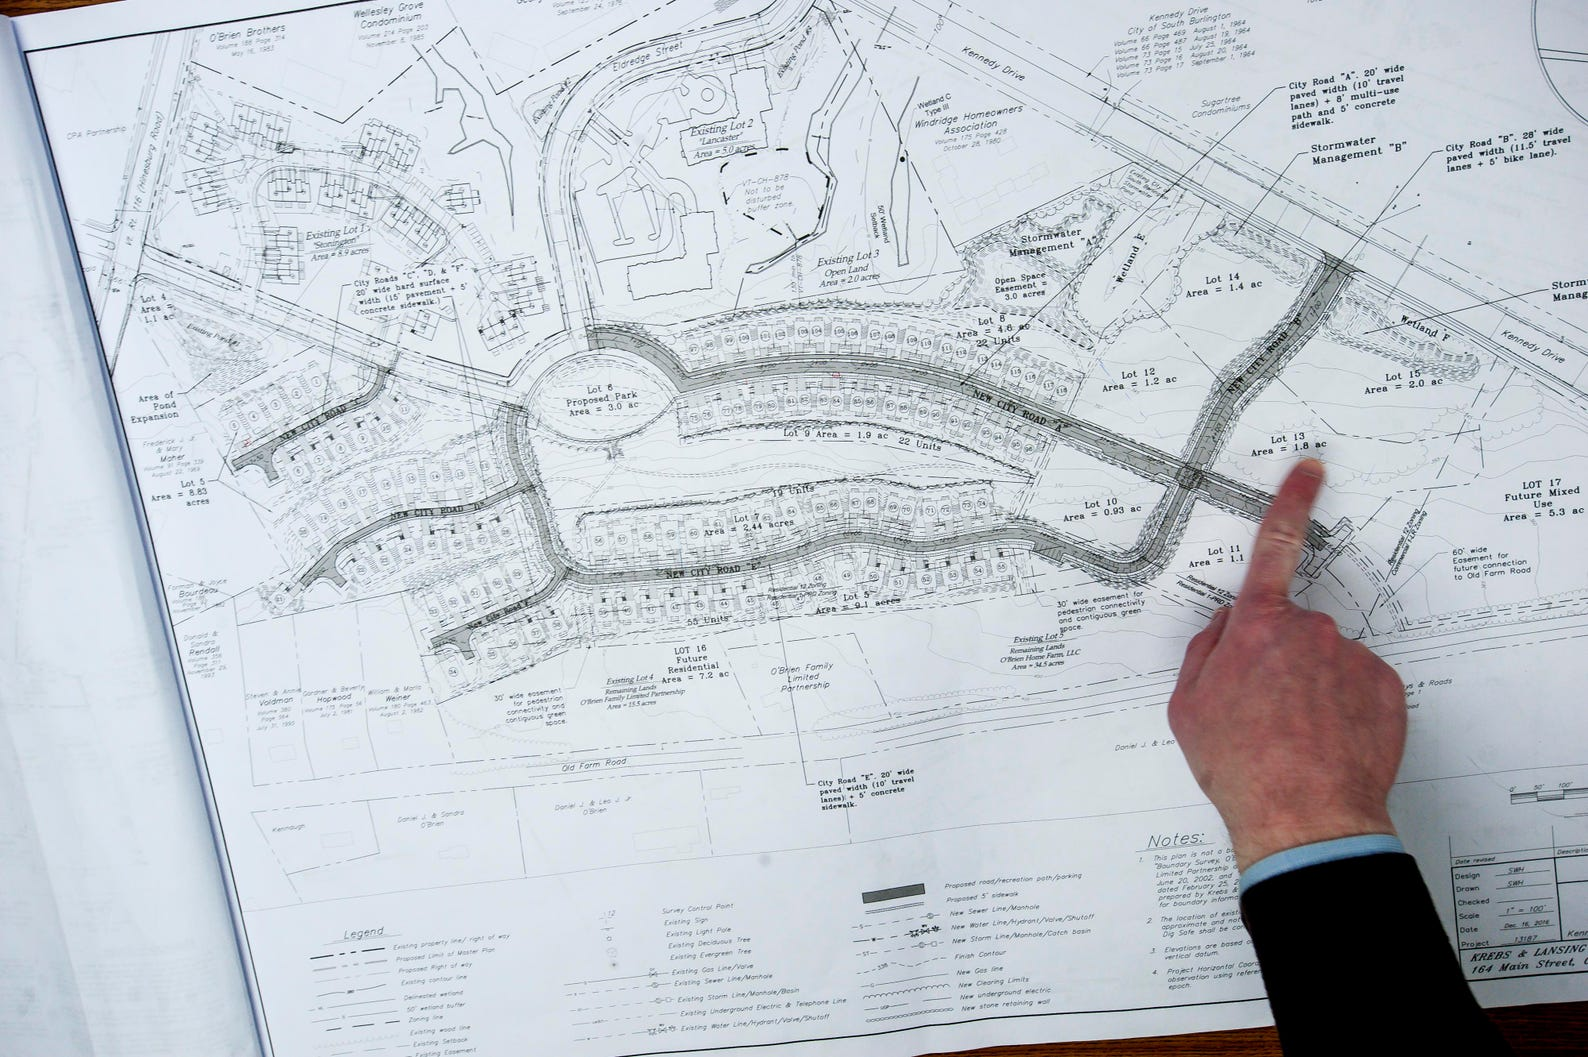 Evan Langfeldt, CEO of the O'Brien Brothers Agency, describes a planned residential development in South Burlington on Tuesday, February 28, 2017. The project is between Old Farm Road, Kimball Avenue and Route 116.